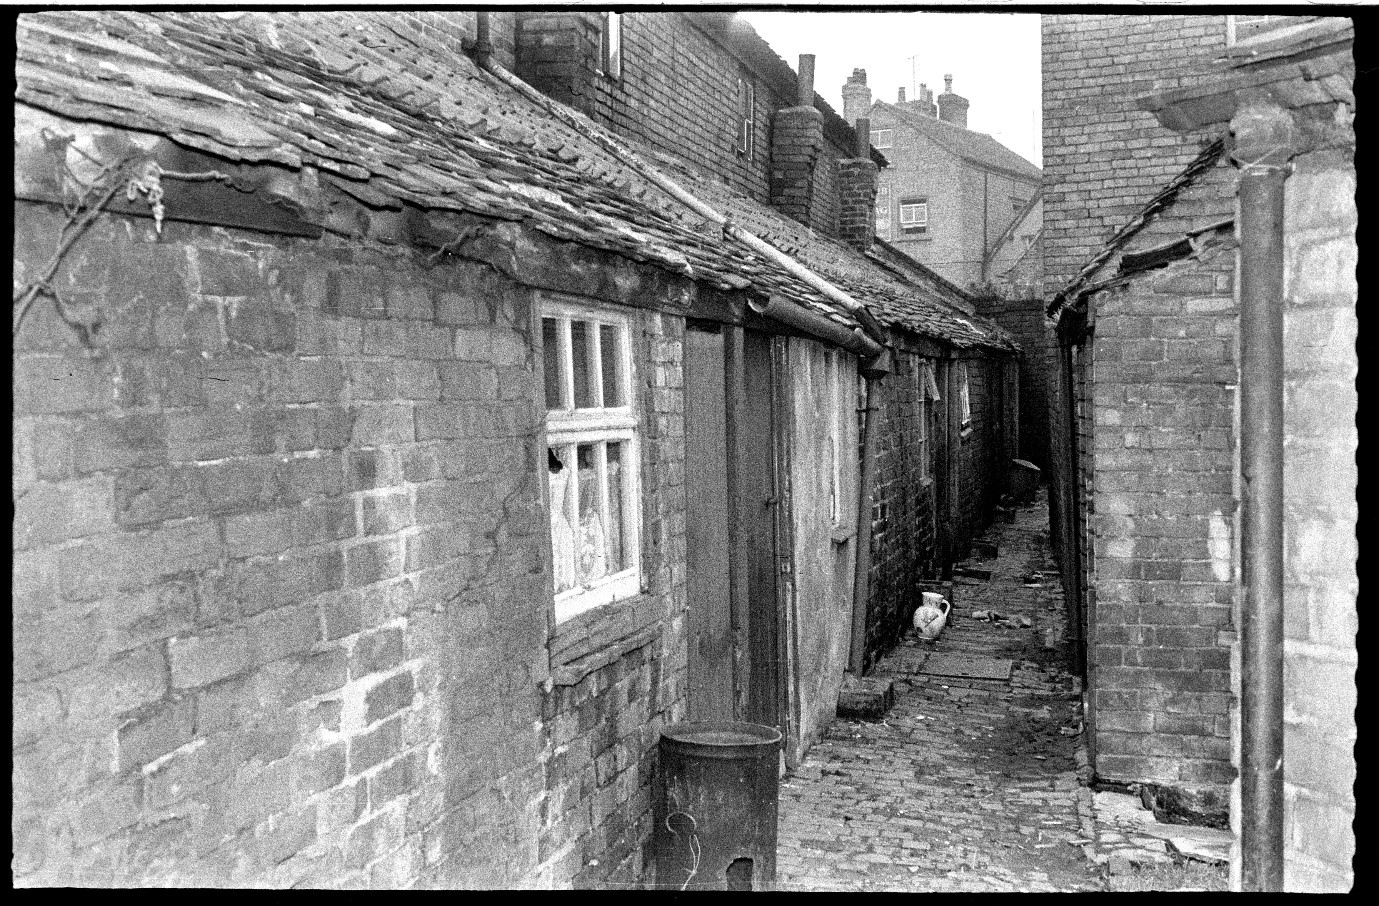 Conditions in The Moors area of the city, c1960